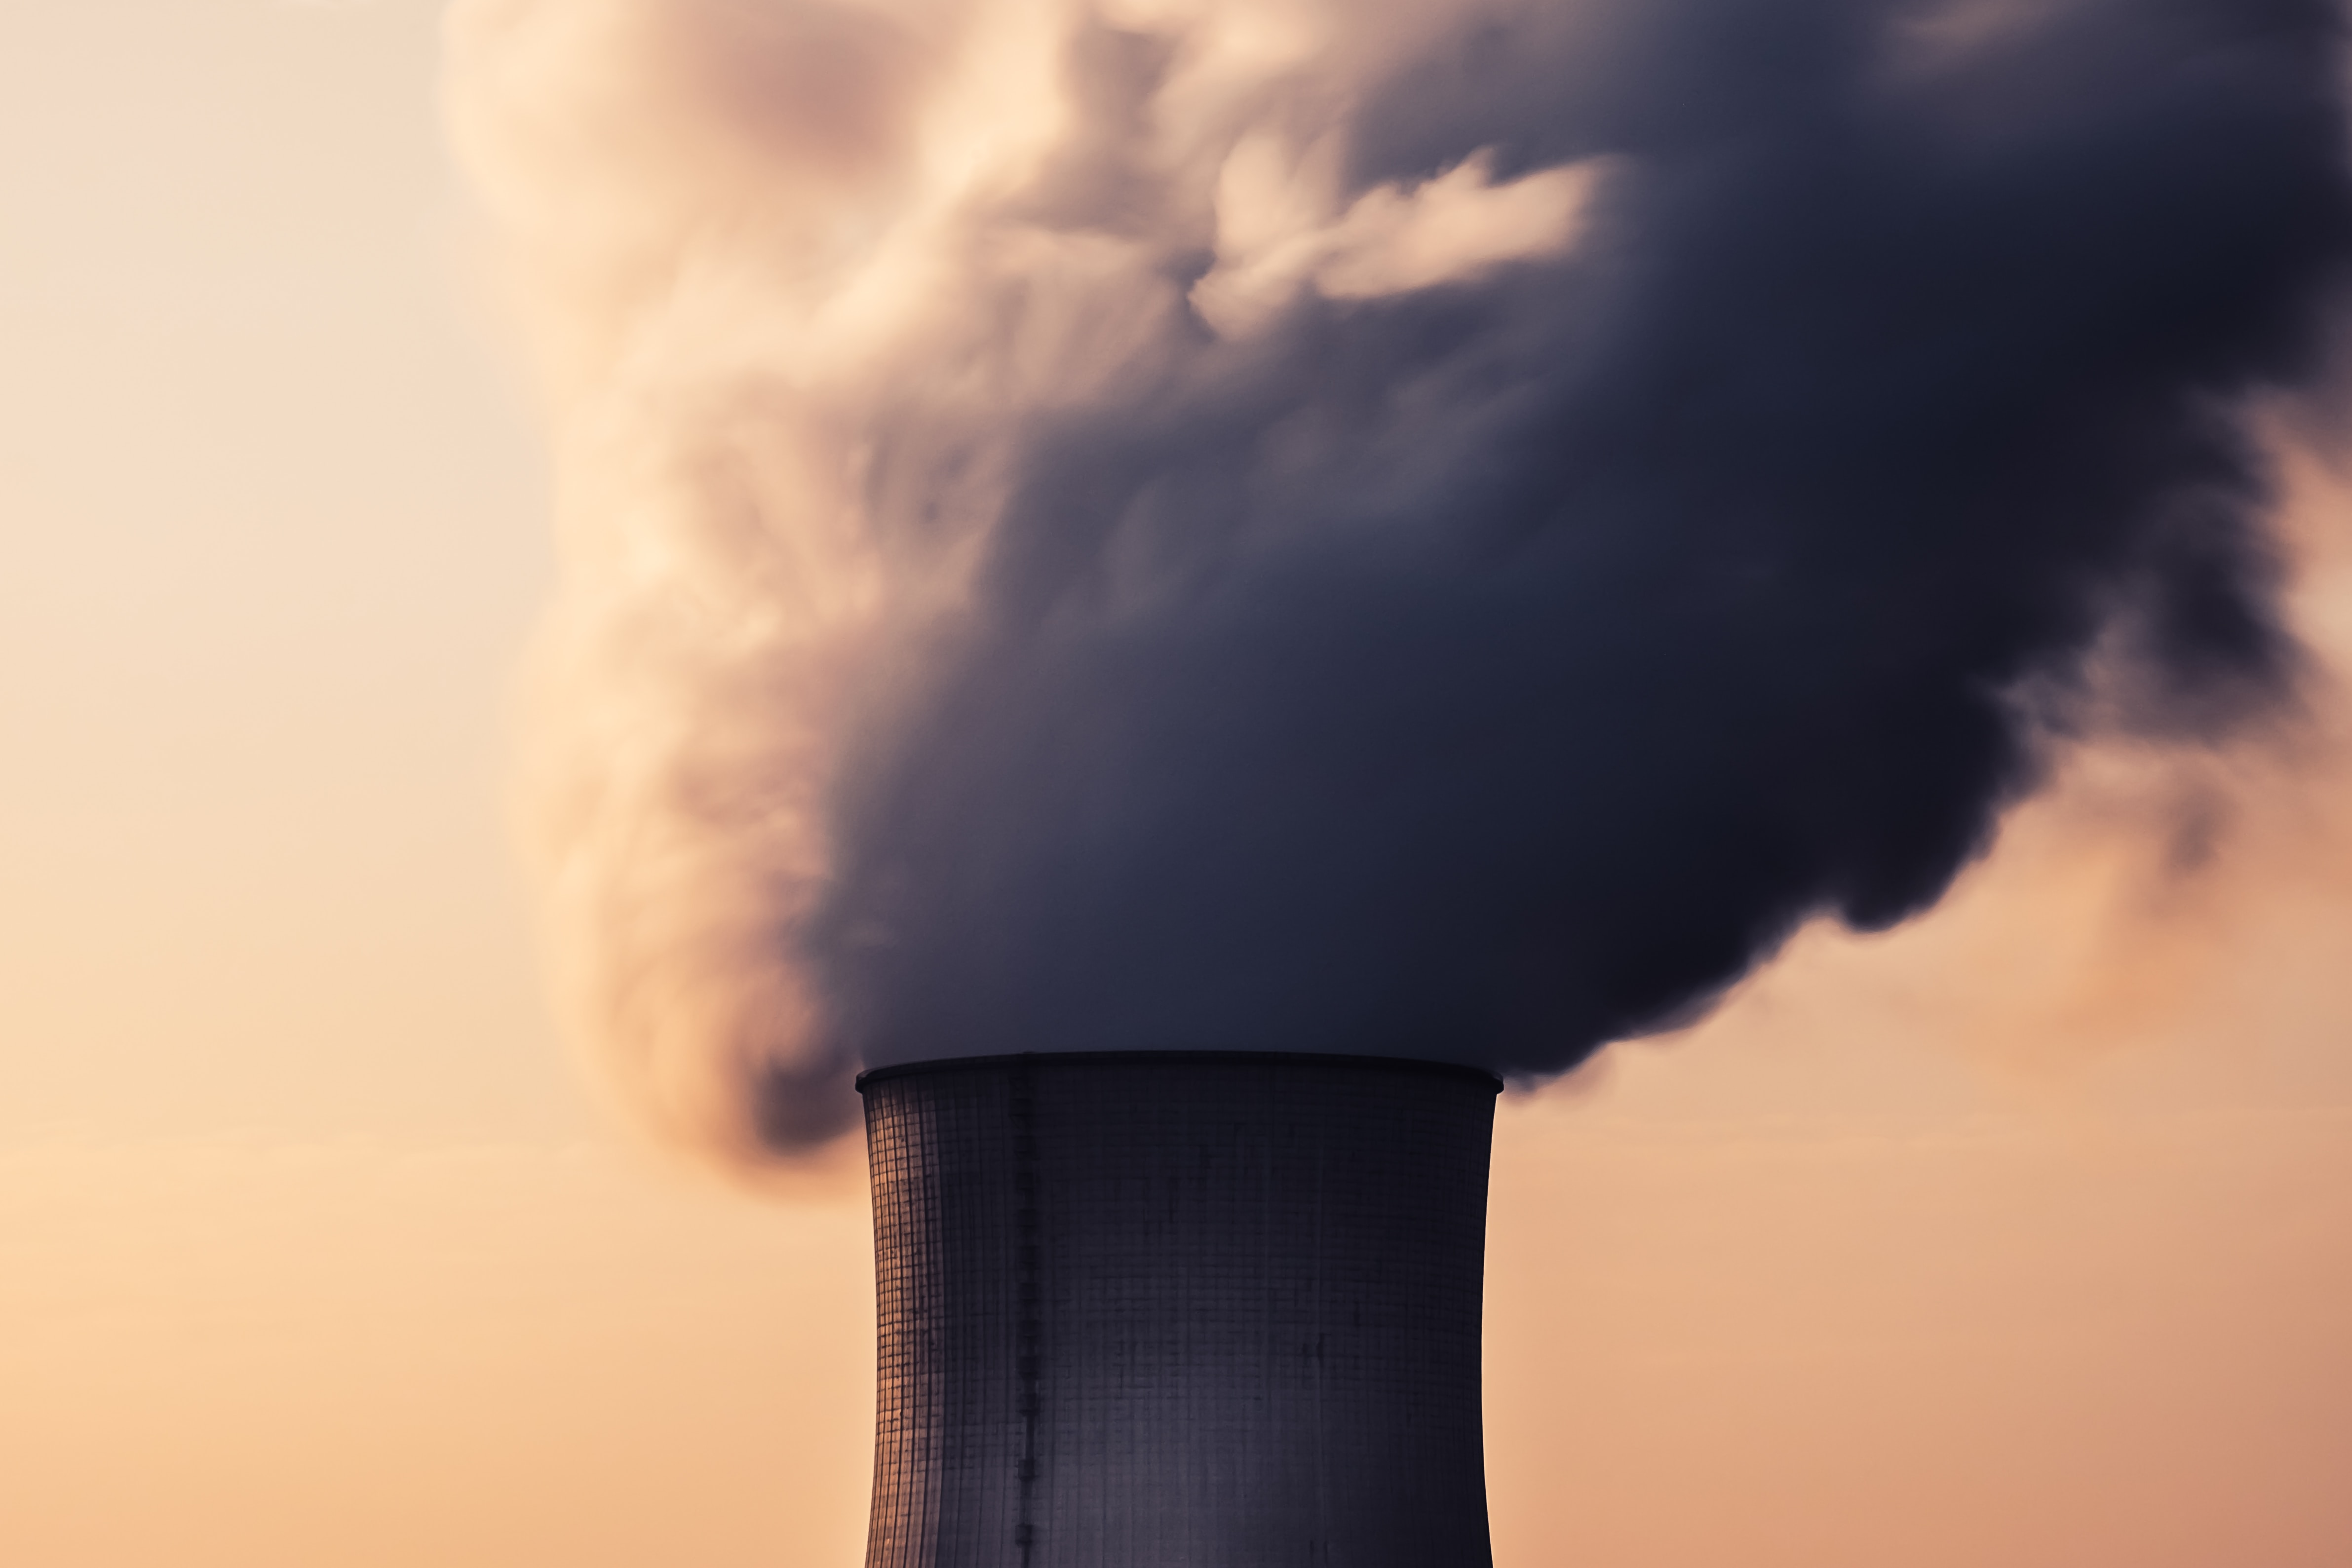 Cooling Tower's Fumes